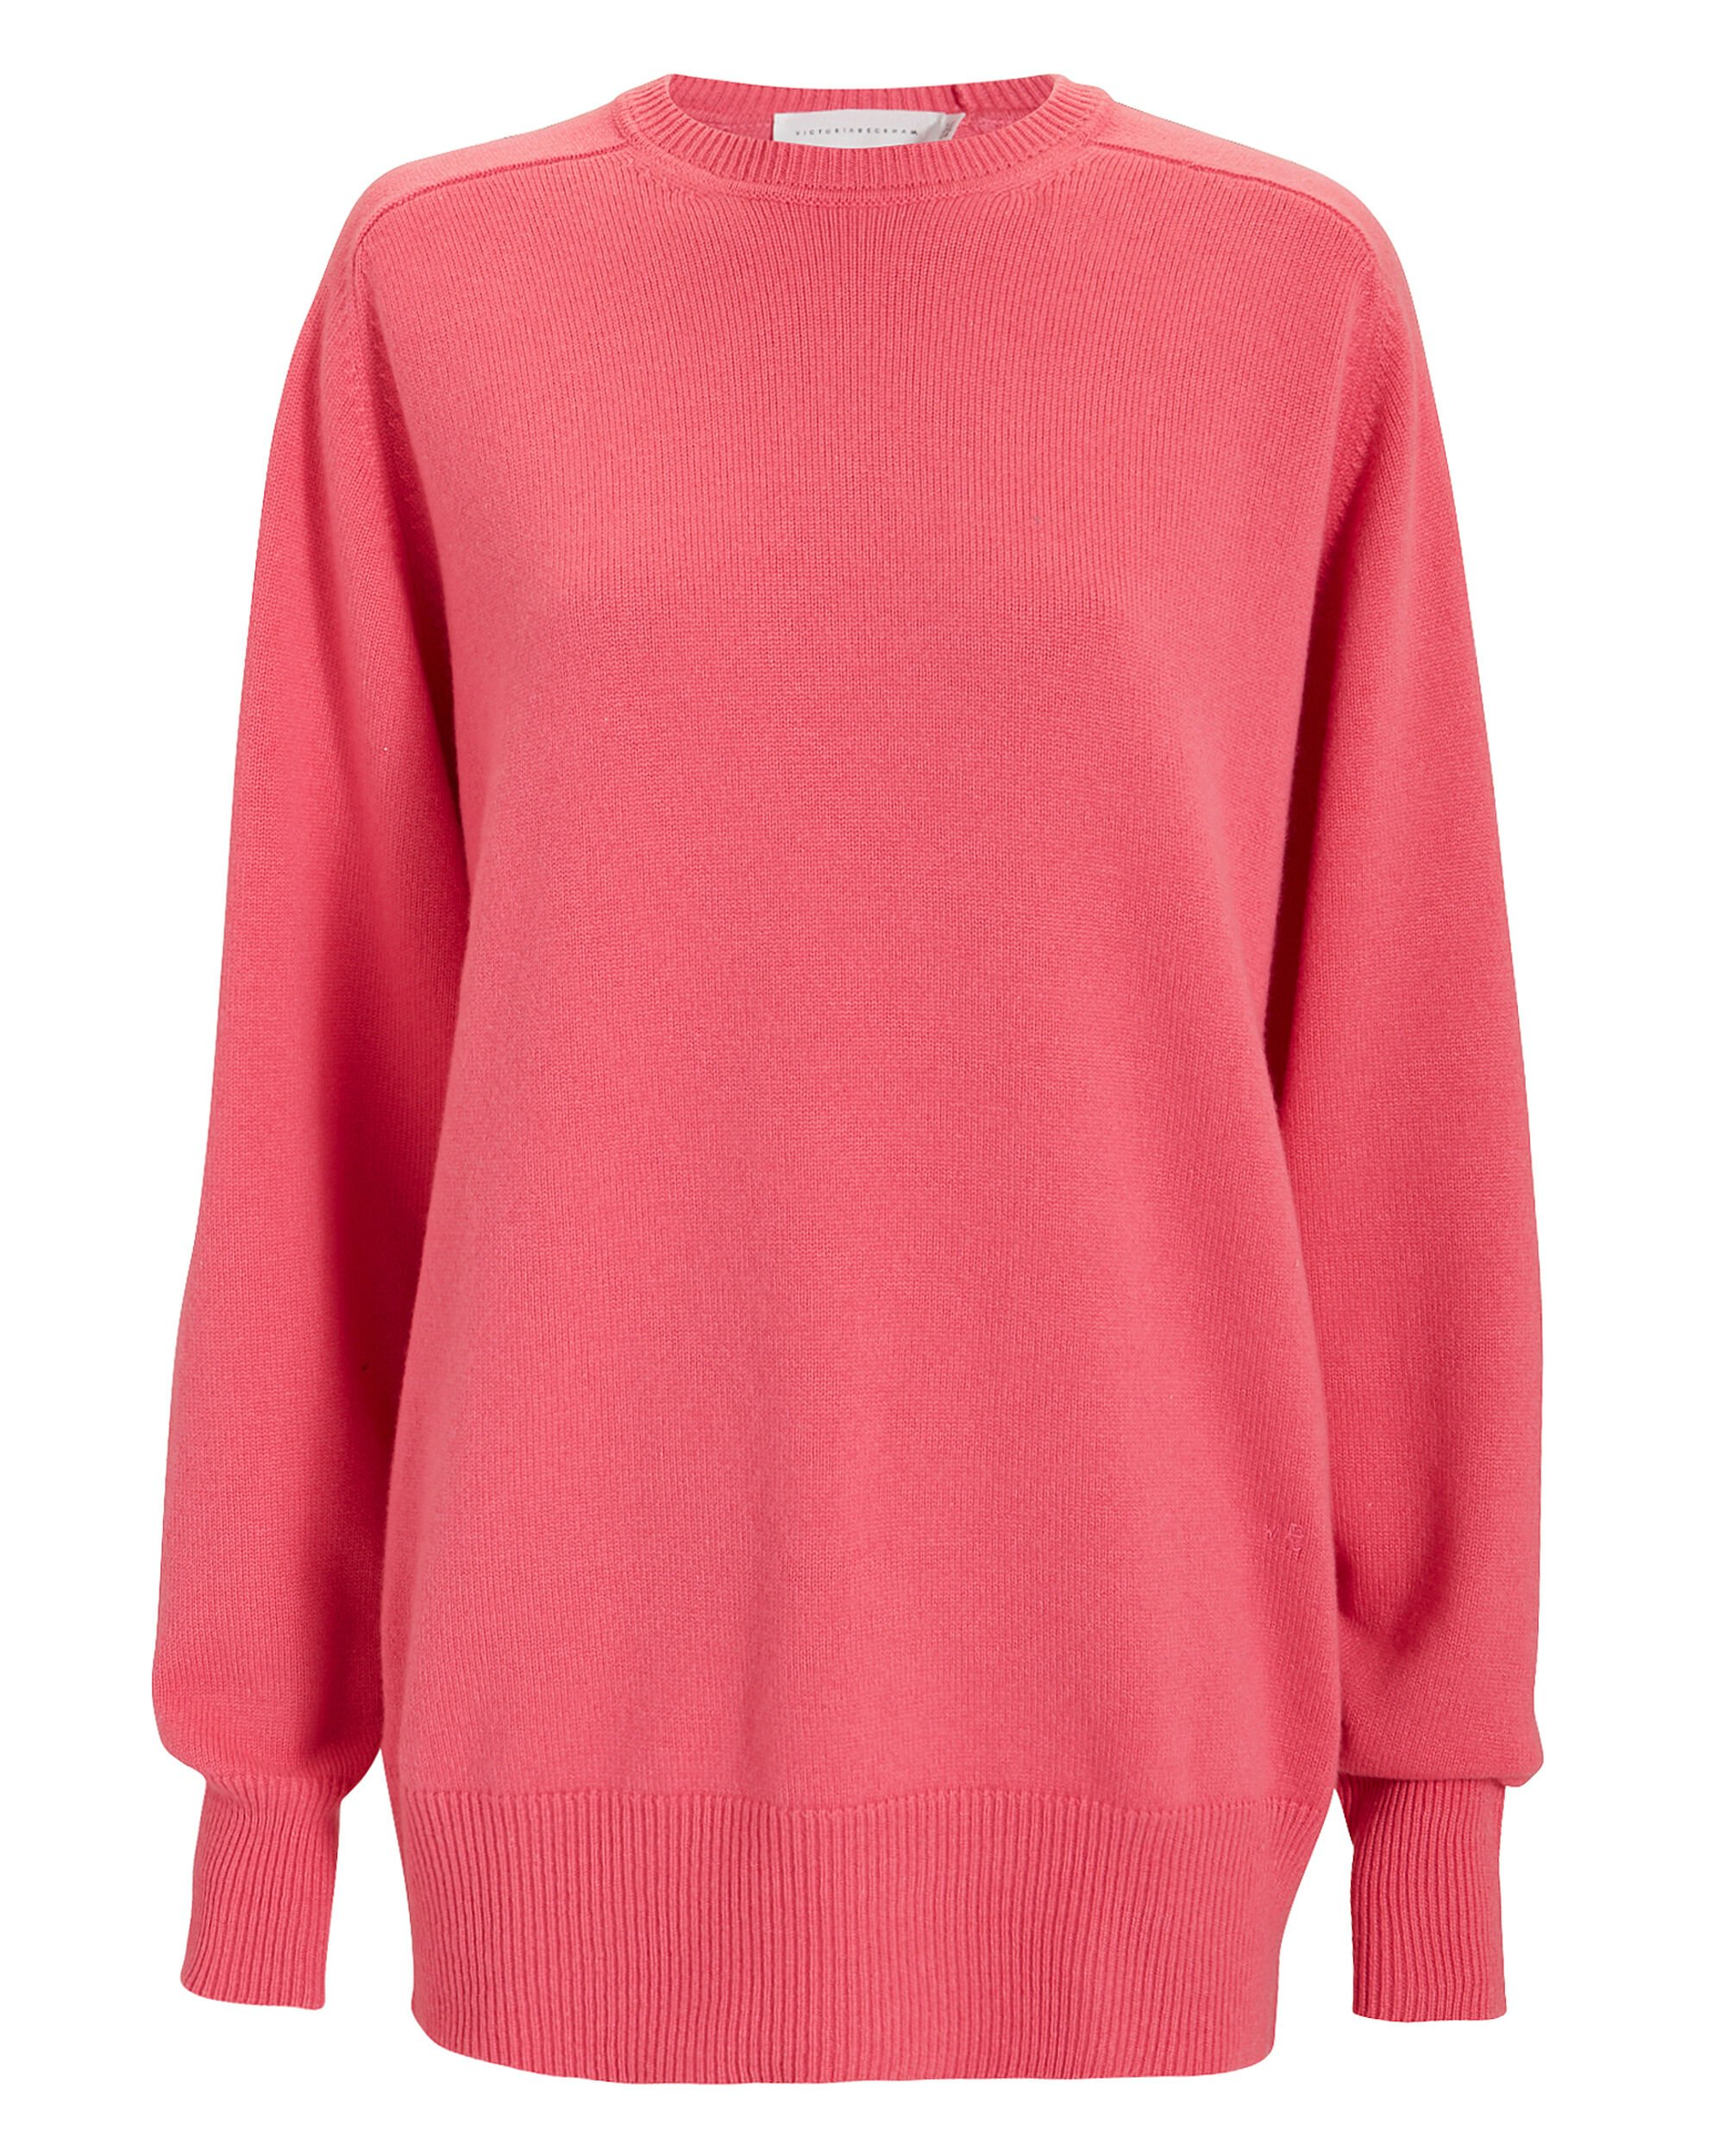 Pink Cashmere Sweater, PINK, hi-res